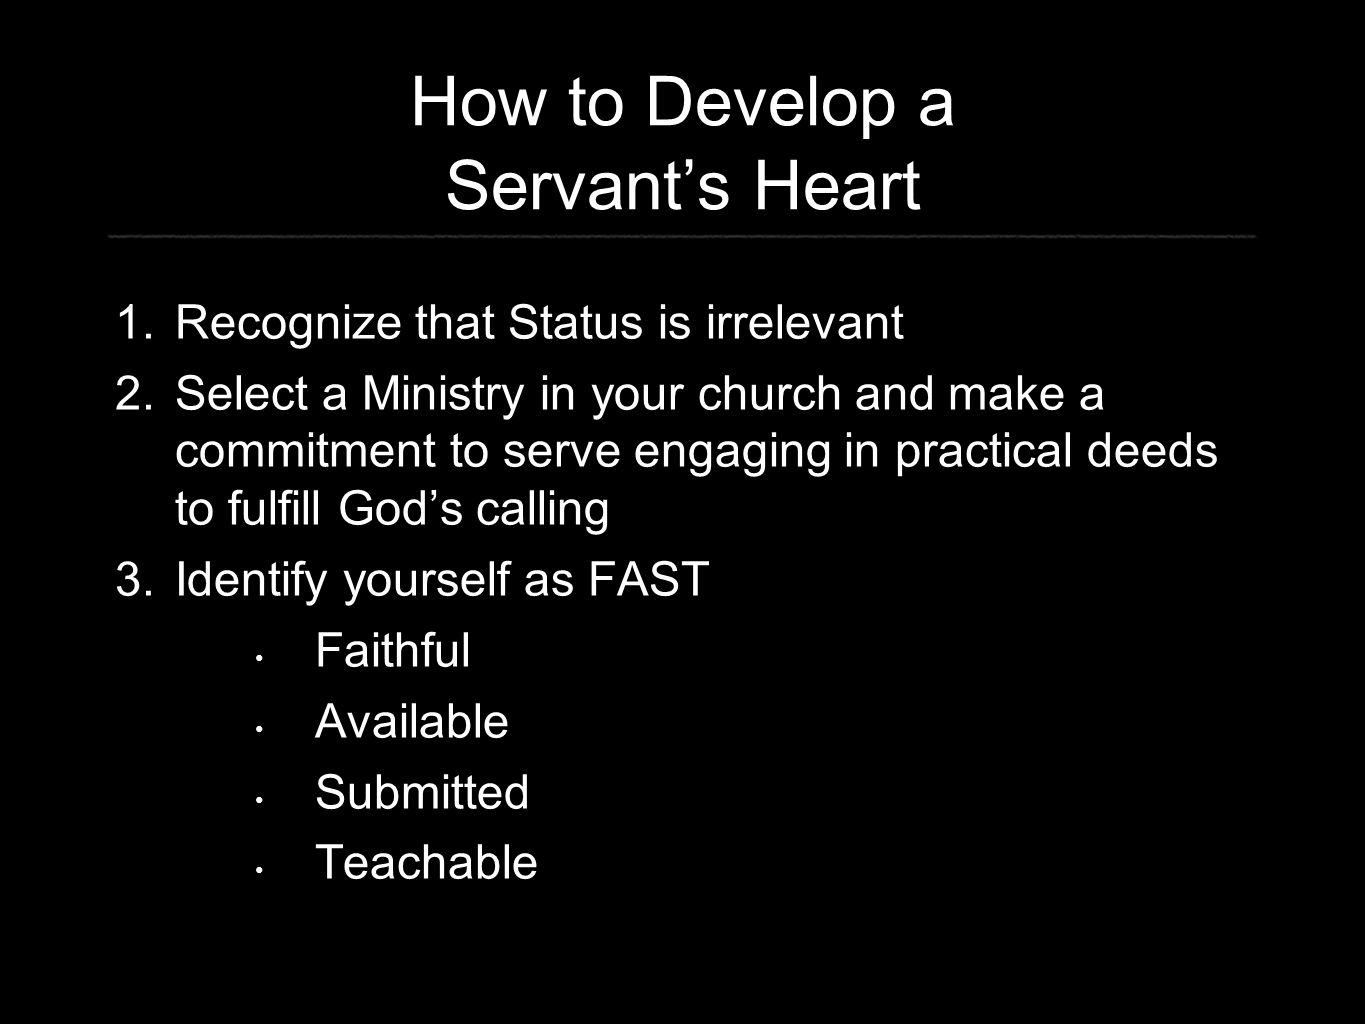 How to Develop a Servant's Heart 1. Recognize that Status is irrelevant 2. Select a Ministry in your church and make a commitment to serve engaging in